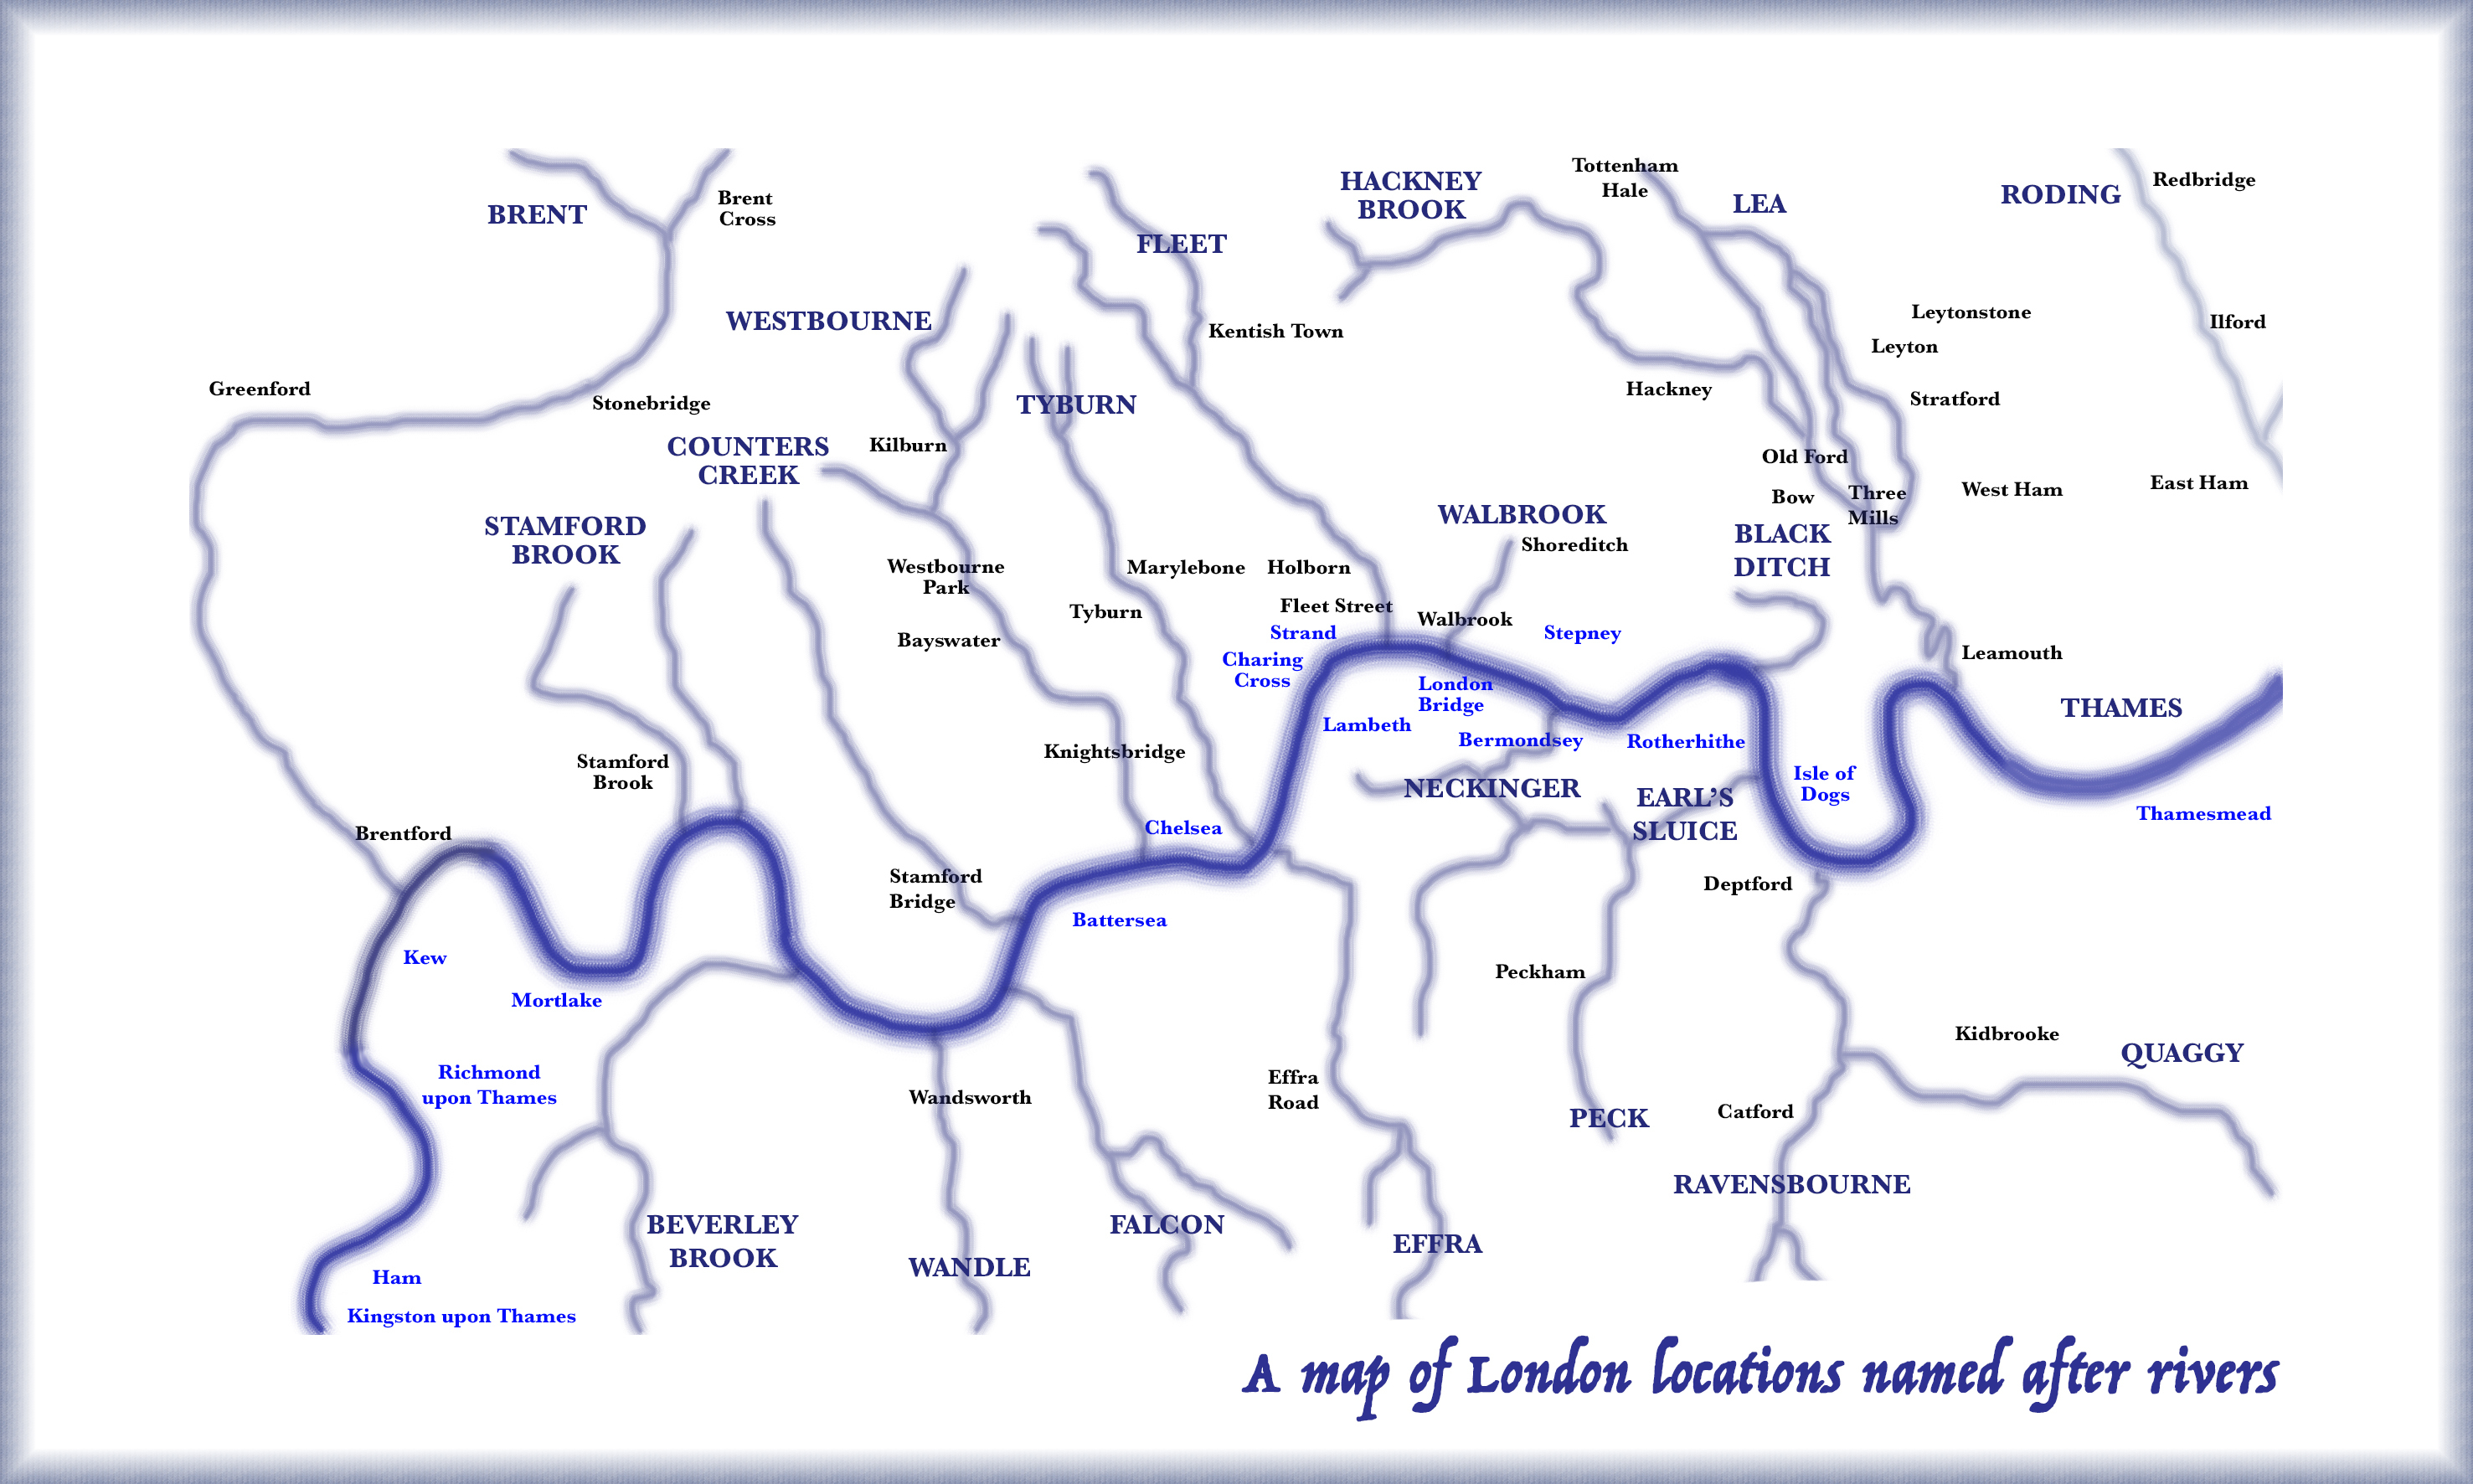 Rivers Subway Map.London S Lost Rivers Mapped With The Place Names They Inspired